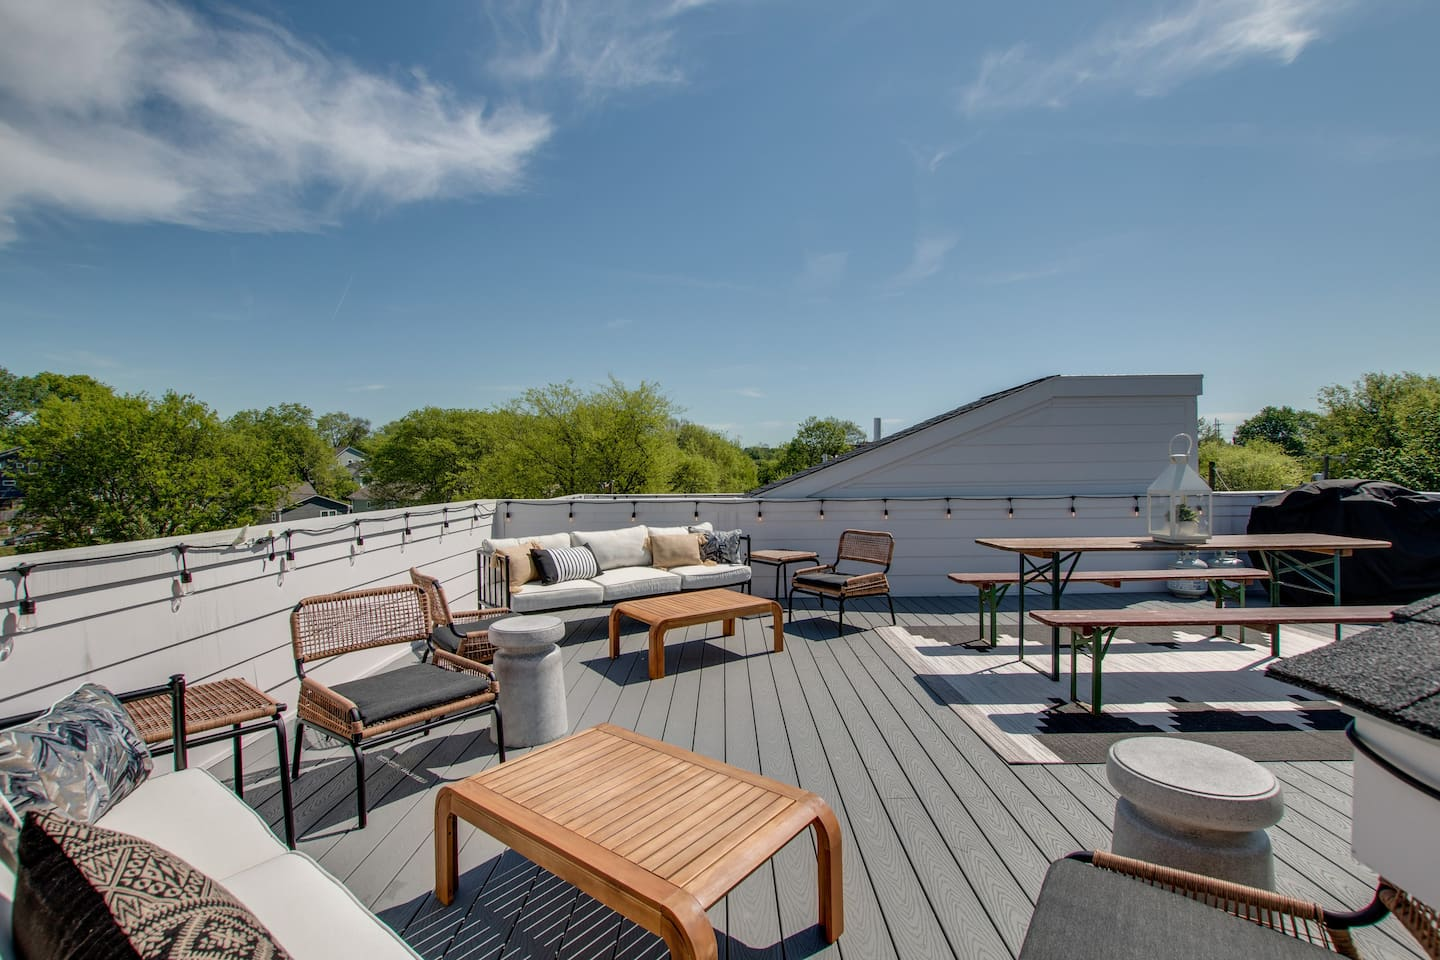 Private Rooftop Deck★ Welcome to the Bohemian Boutique Nashville! ★ 3 Master Suites ★ 3.5 Bathrooms ★ Full Rooftop Deck ★ Walking Distance to 5 points East Nashville!